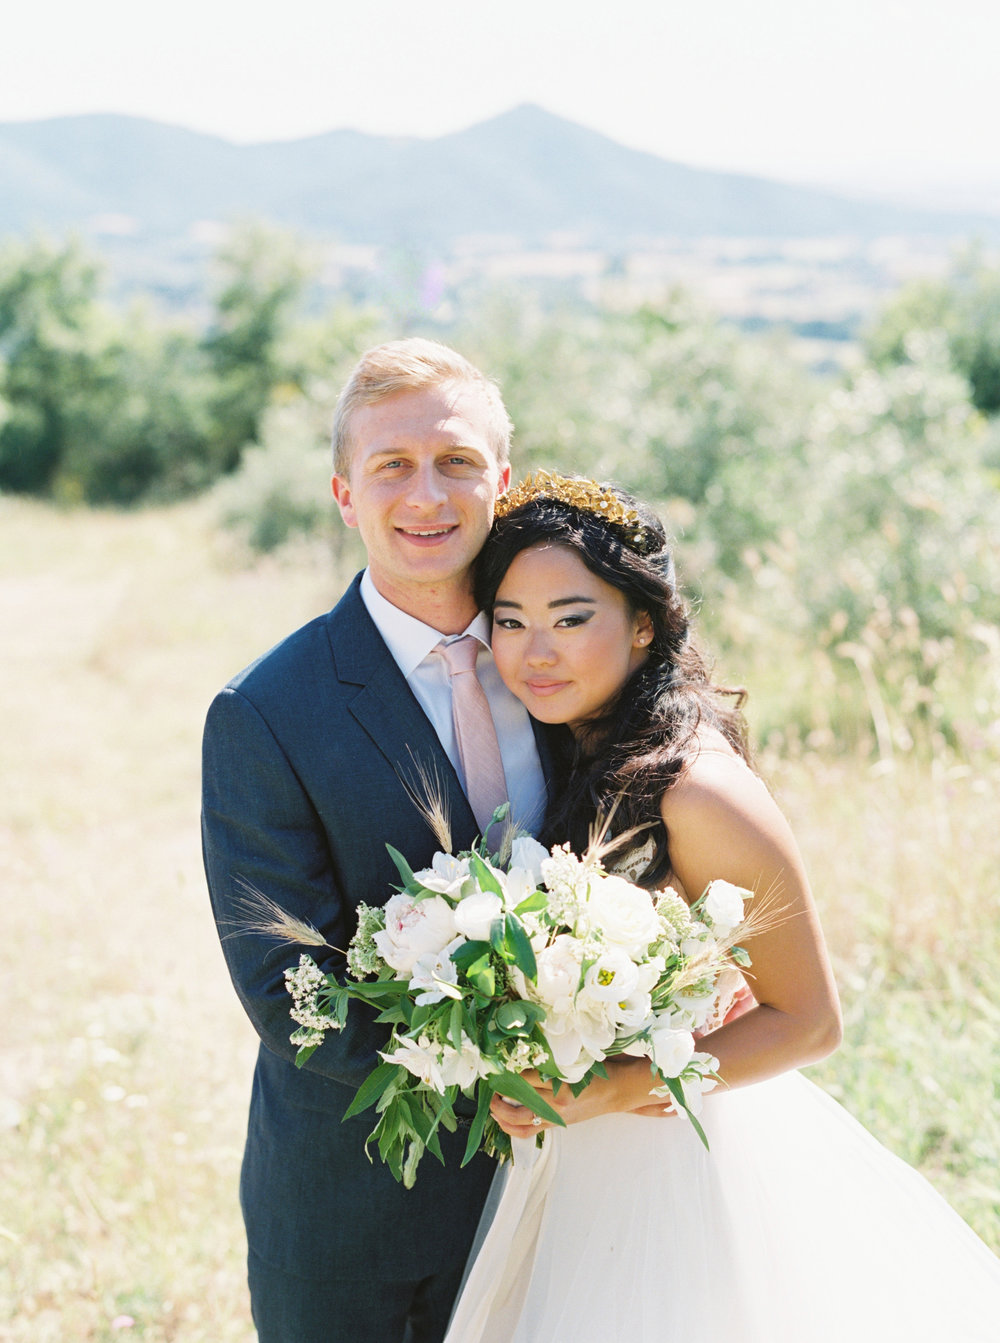 Erin and Michael - Tuscany, Italy (real bride)